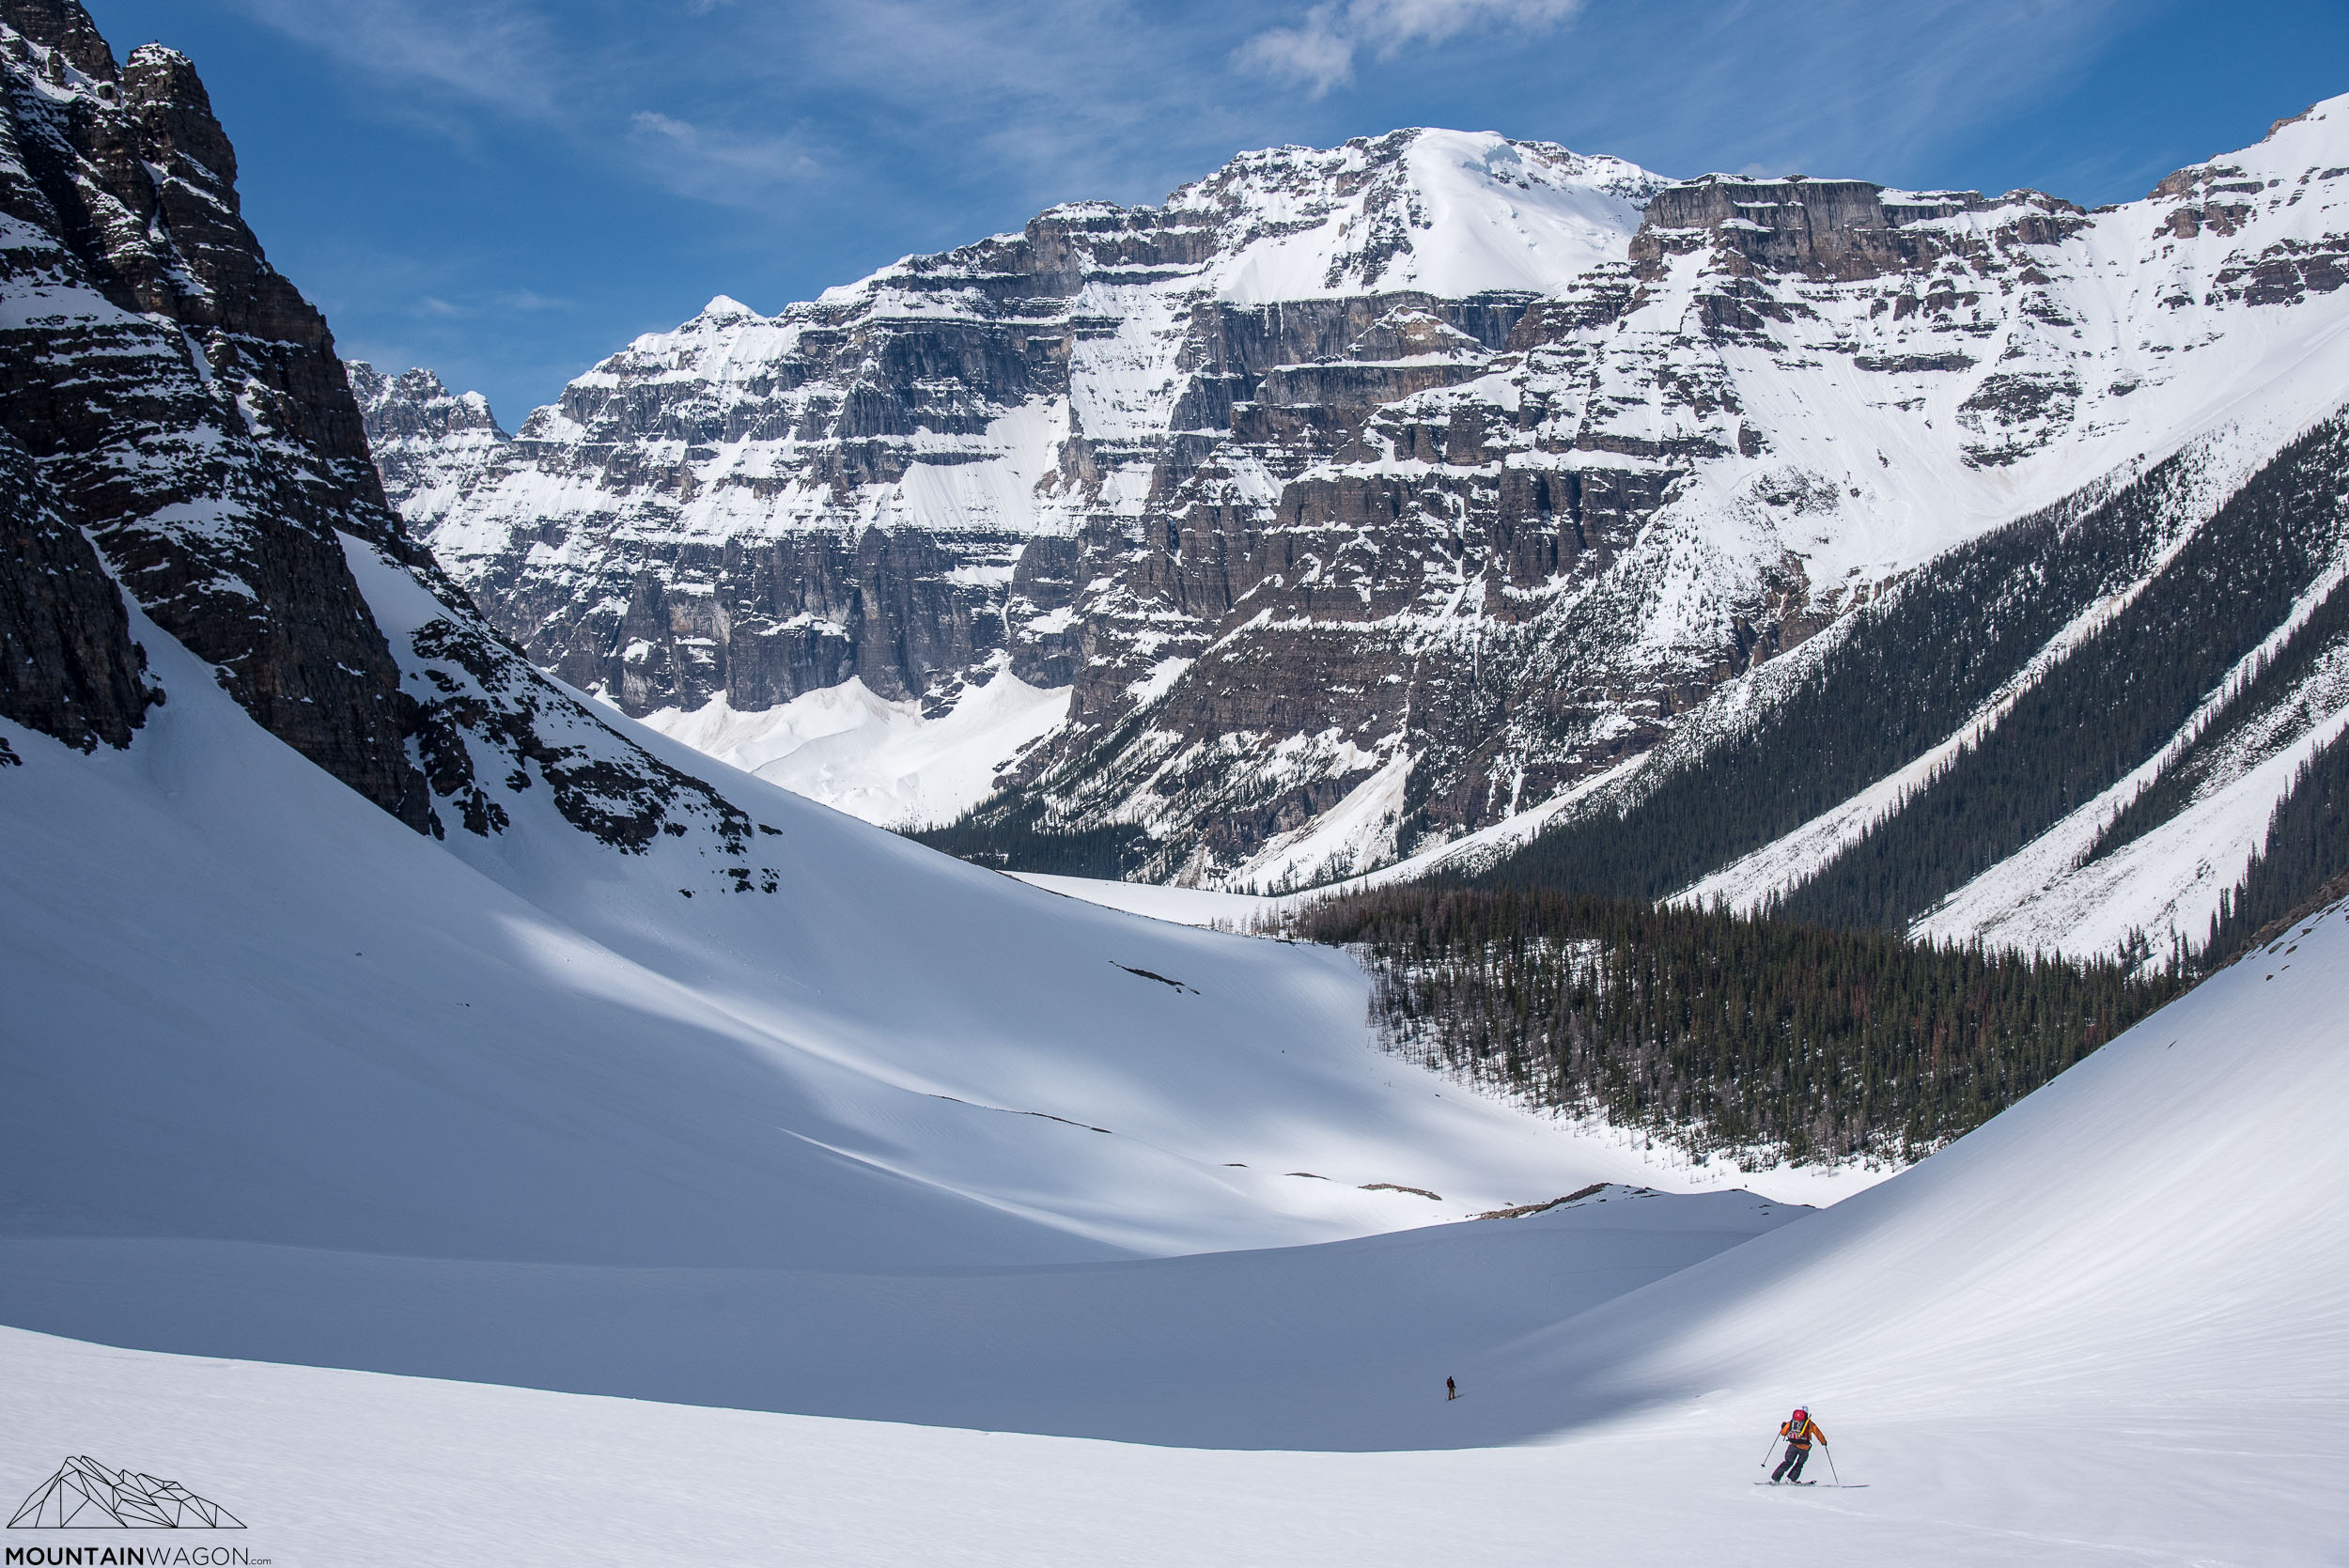 Beautiful spring skiing conditions